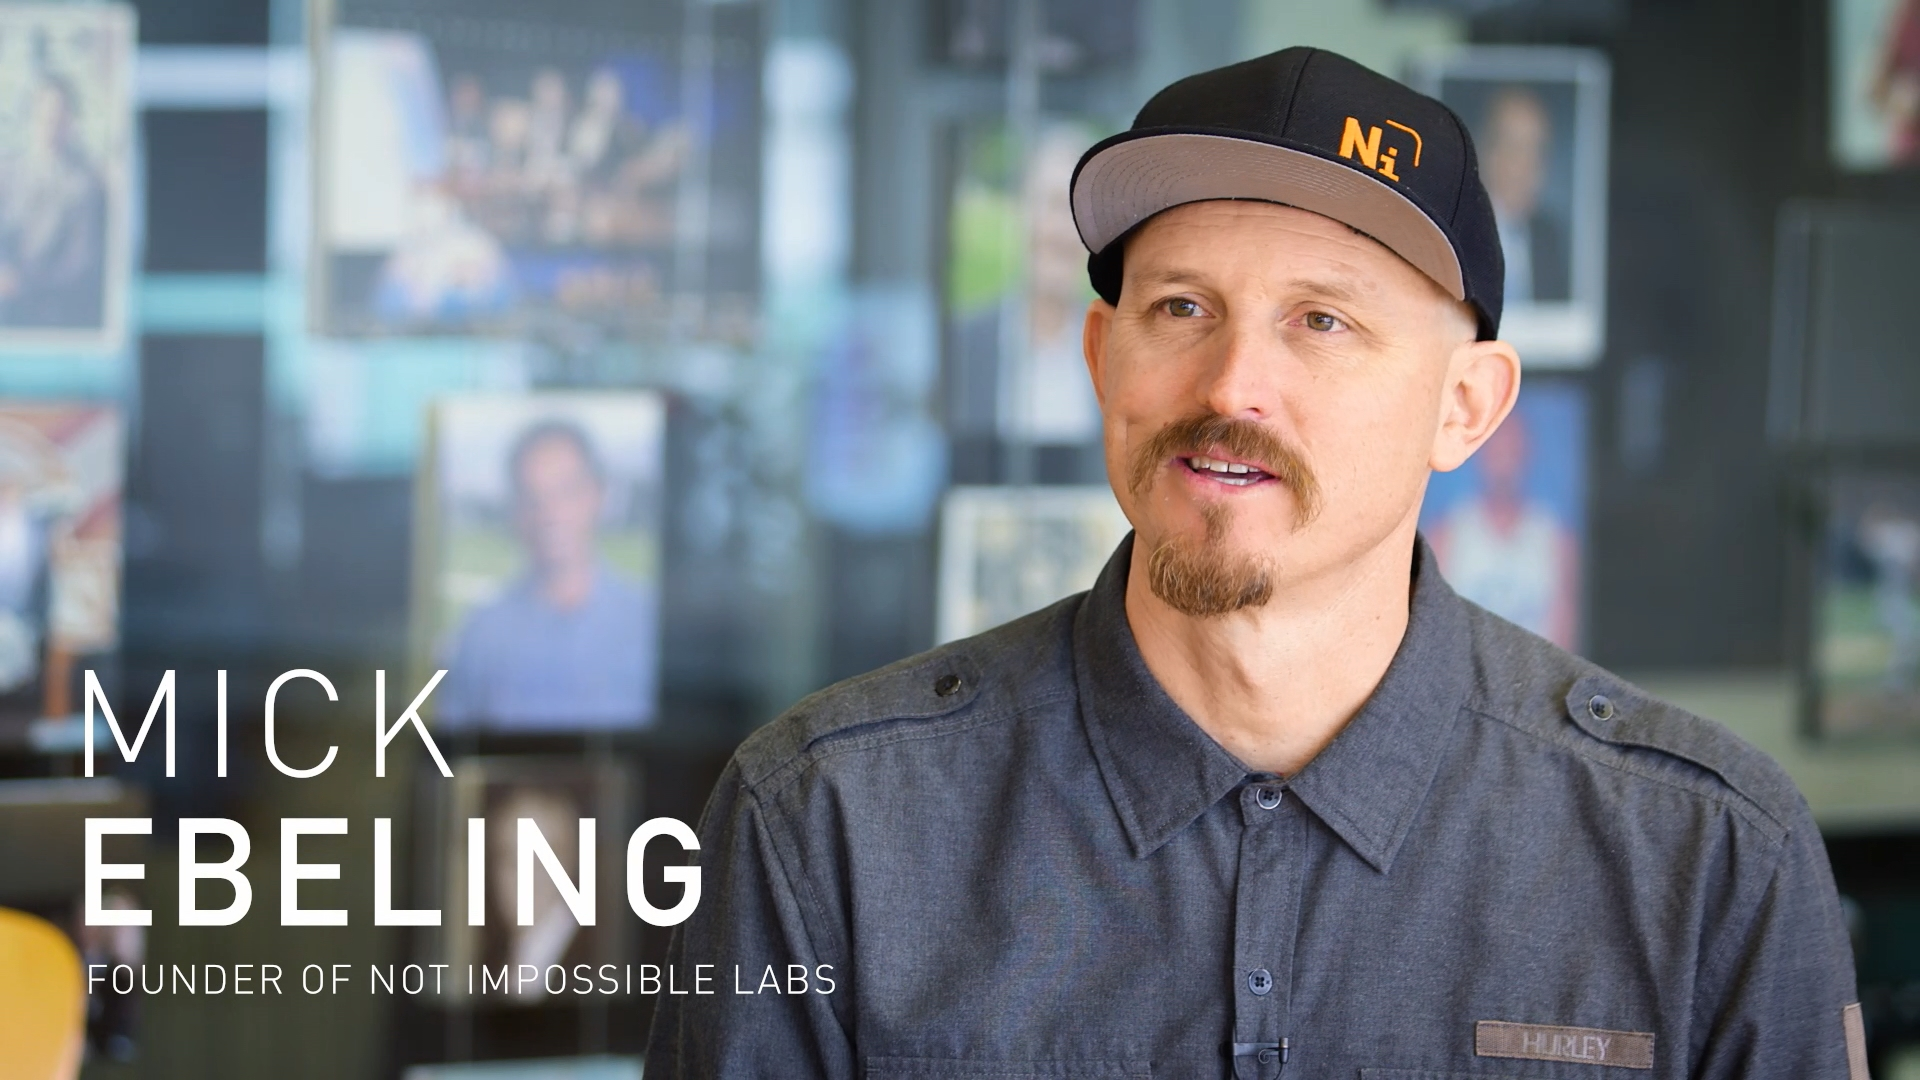 Mick Ebeling: How Not Impossible Labs Solves the Impossible